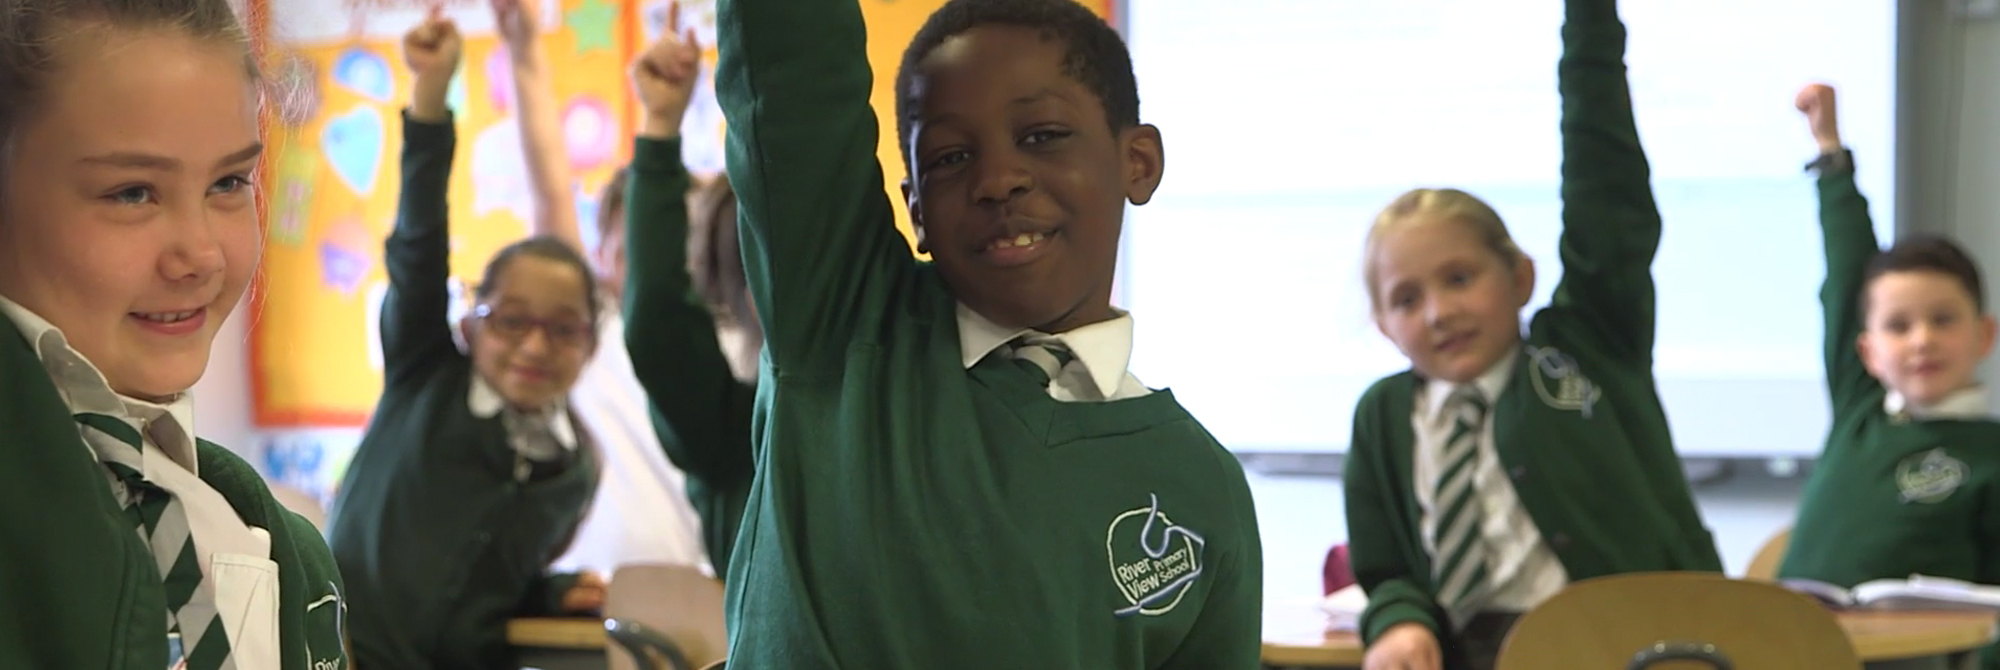 students celebrate River View Primary School Promotional Video